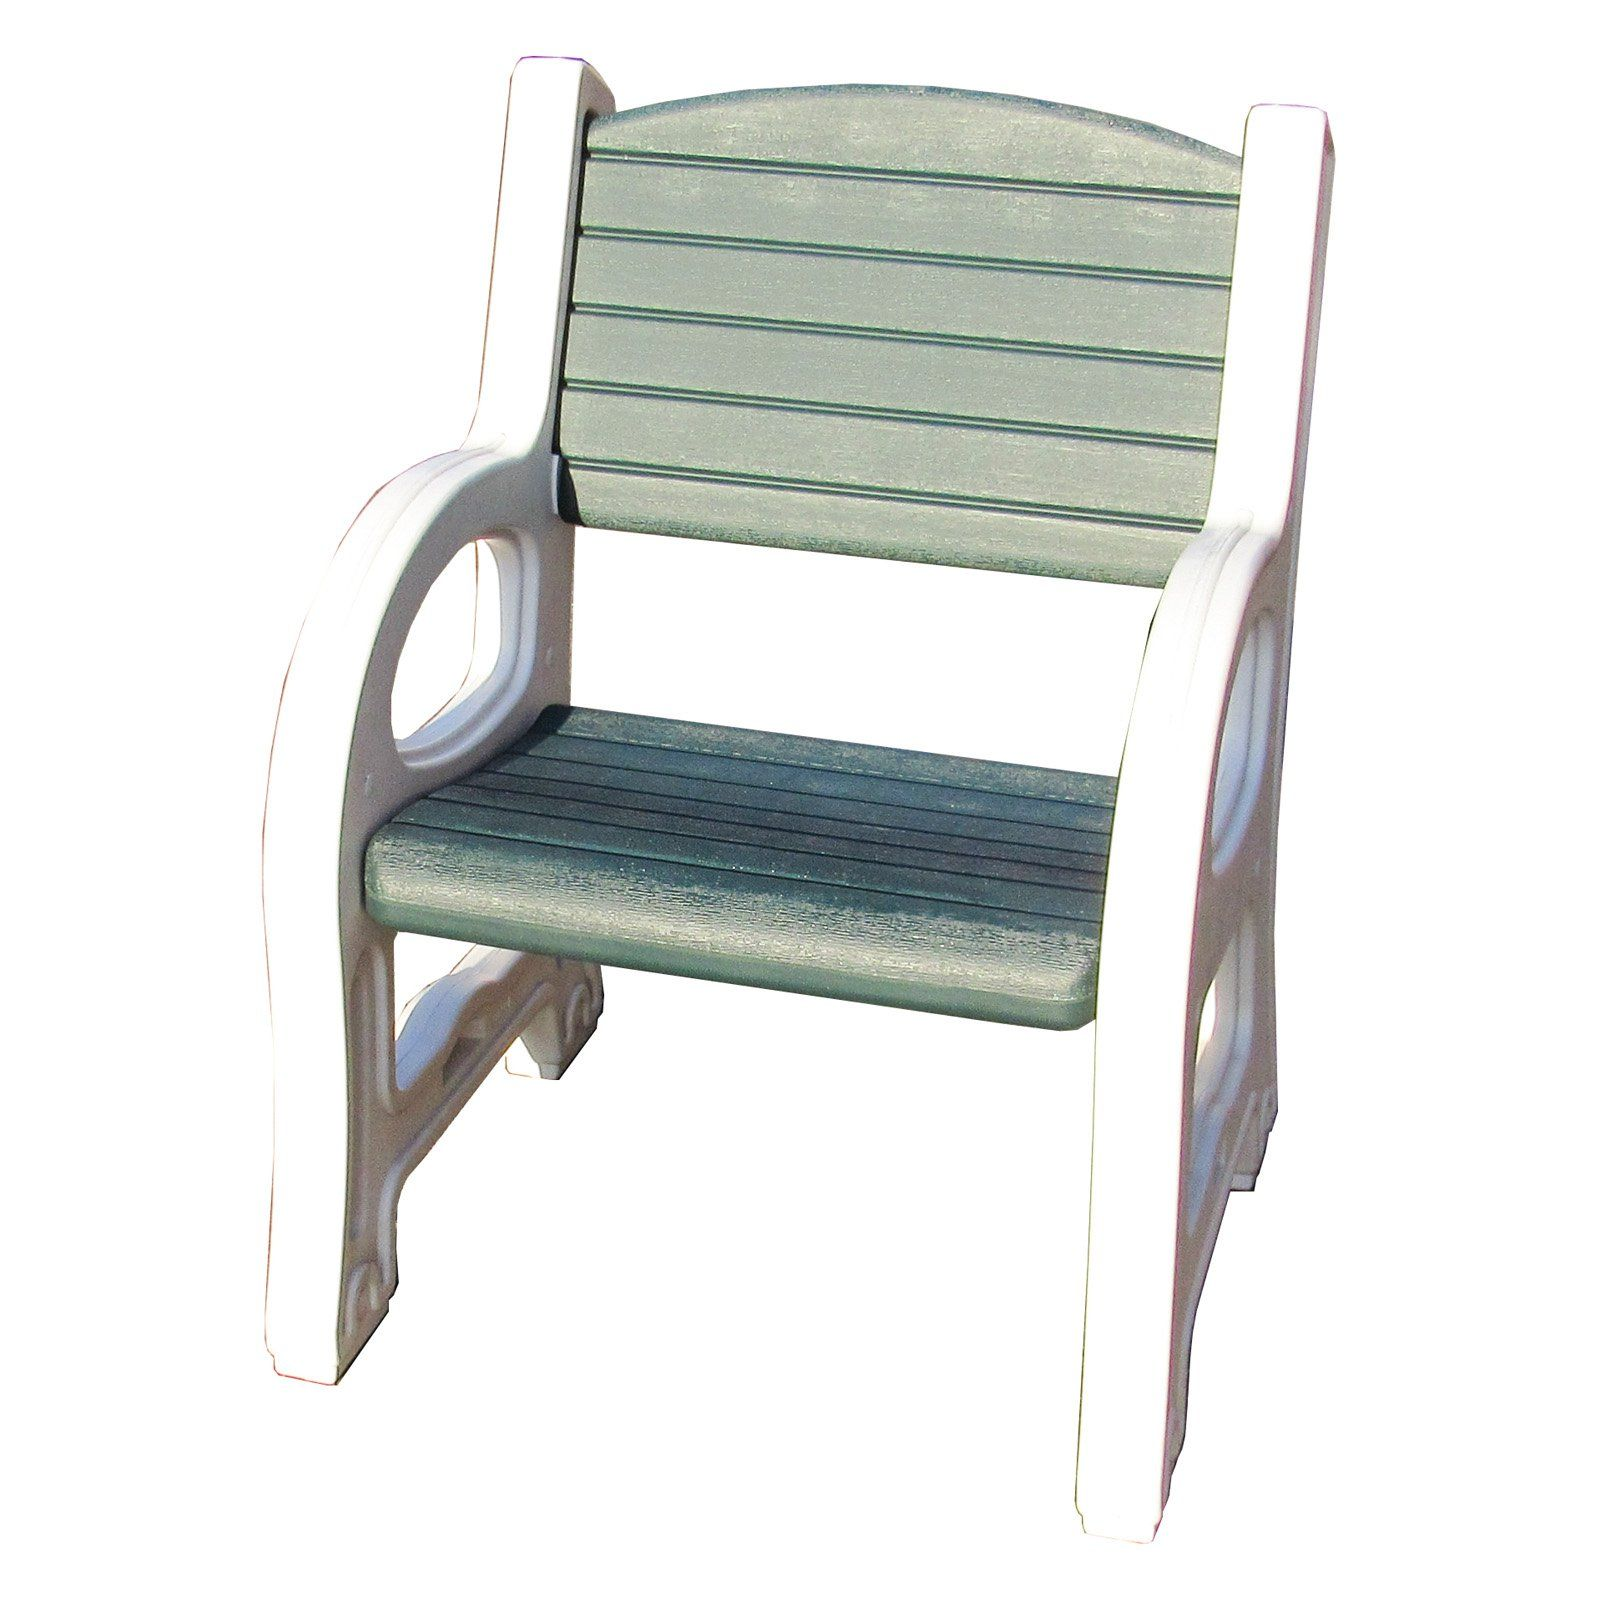 Wondrous Outdoor Duramax Building Products White And Green Plastic Machost Co Dining Chair Design Ideas Machostcouk